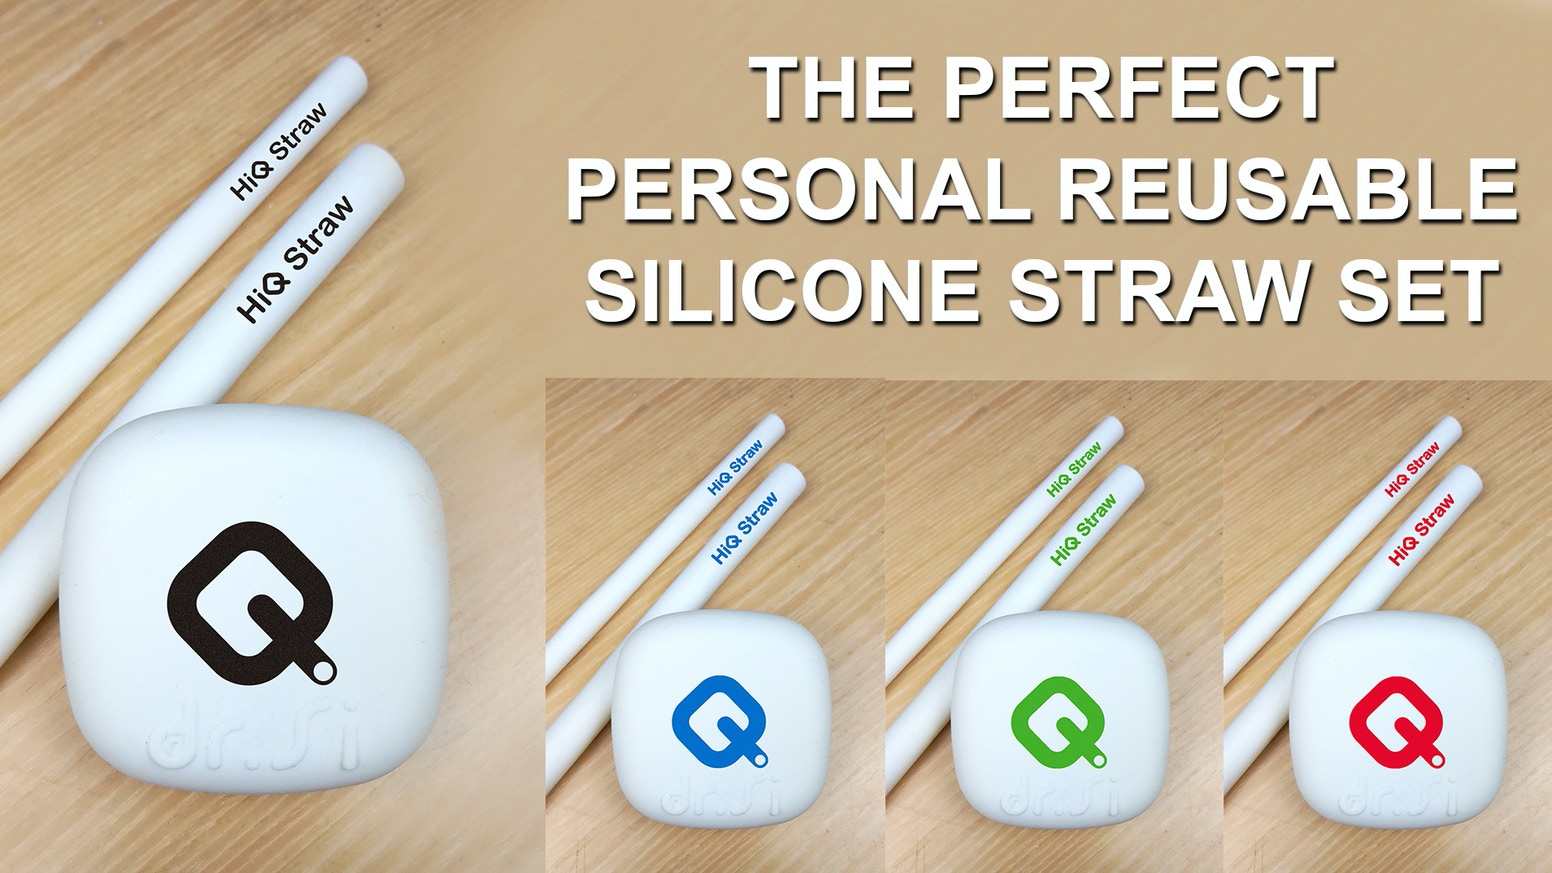 HiQ Straw: Zero Plastic 100% Eco-Friendly Silicone Straw Set